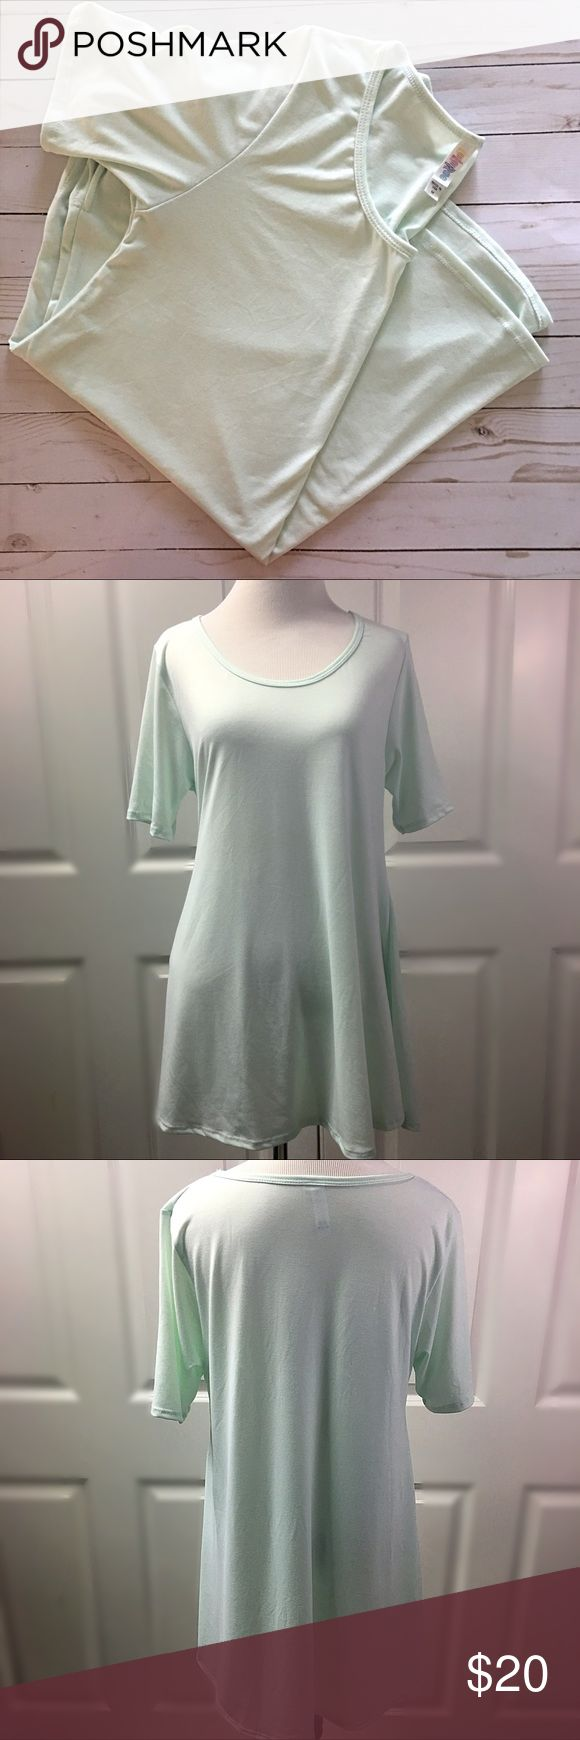 🆕! LuLaRoe Perfect T - Mint LuLaRoe Perfect T - Mint Shirt has been washed according to instructions but never worn.   LuLaRoe's Perfect T boasts a fun swing shape complimented by flirty side slits and a flattering half-sleeve that makes this simple, comfortable top the star of any outfit. Pair it with any of LuLaRoe's skirts and leggings for a look that can't be ignored!  No Trades. No offers accepted on this item. Price firm unless bundled. Thanks! LuLaRoe Tops